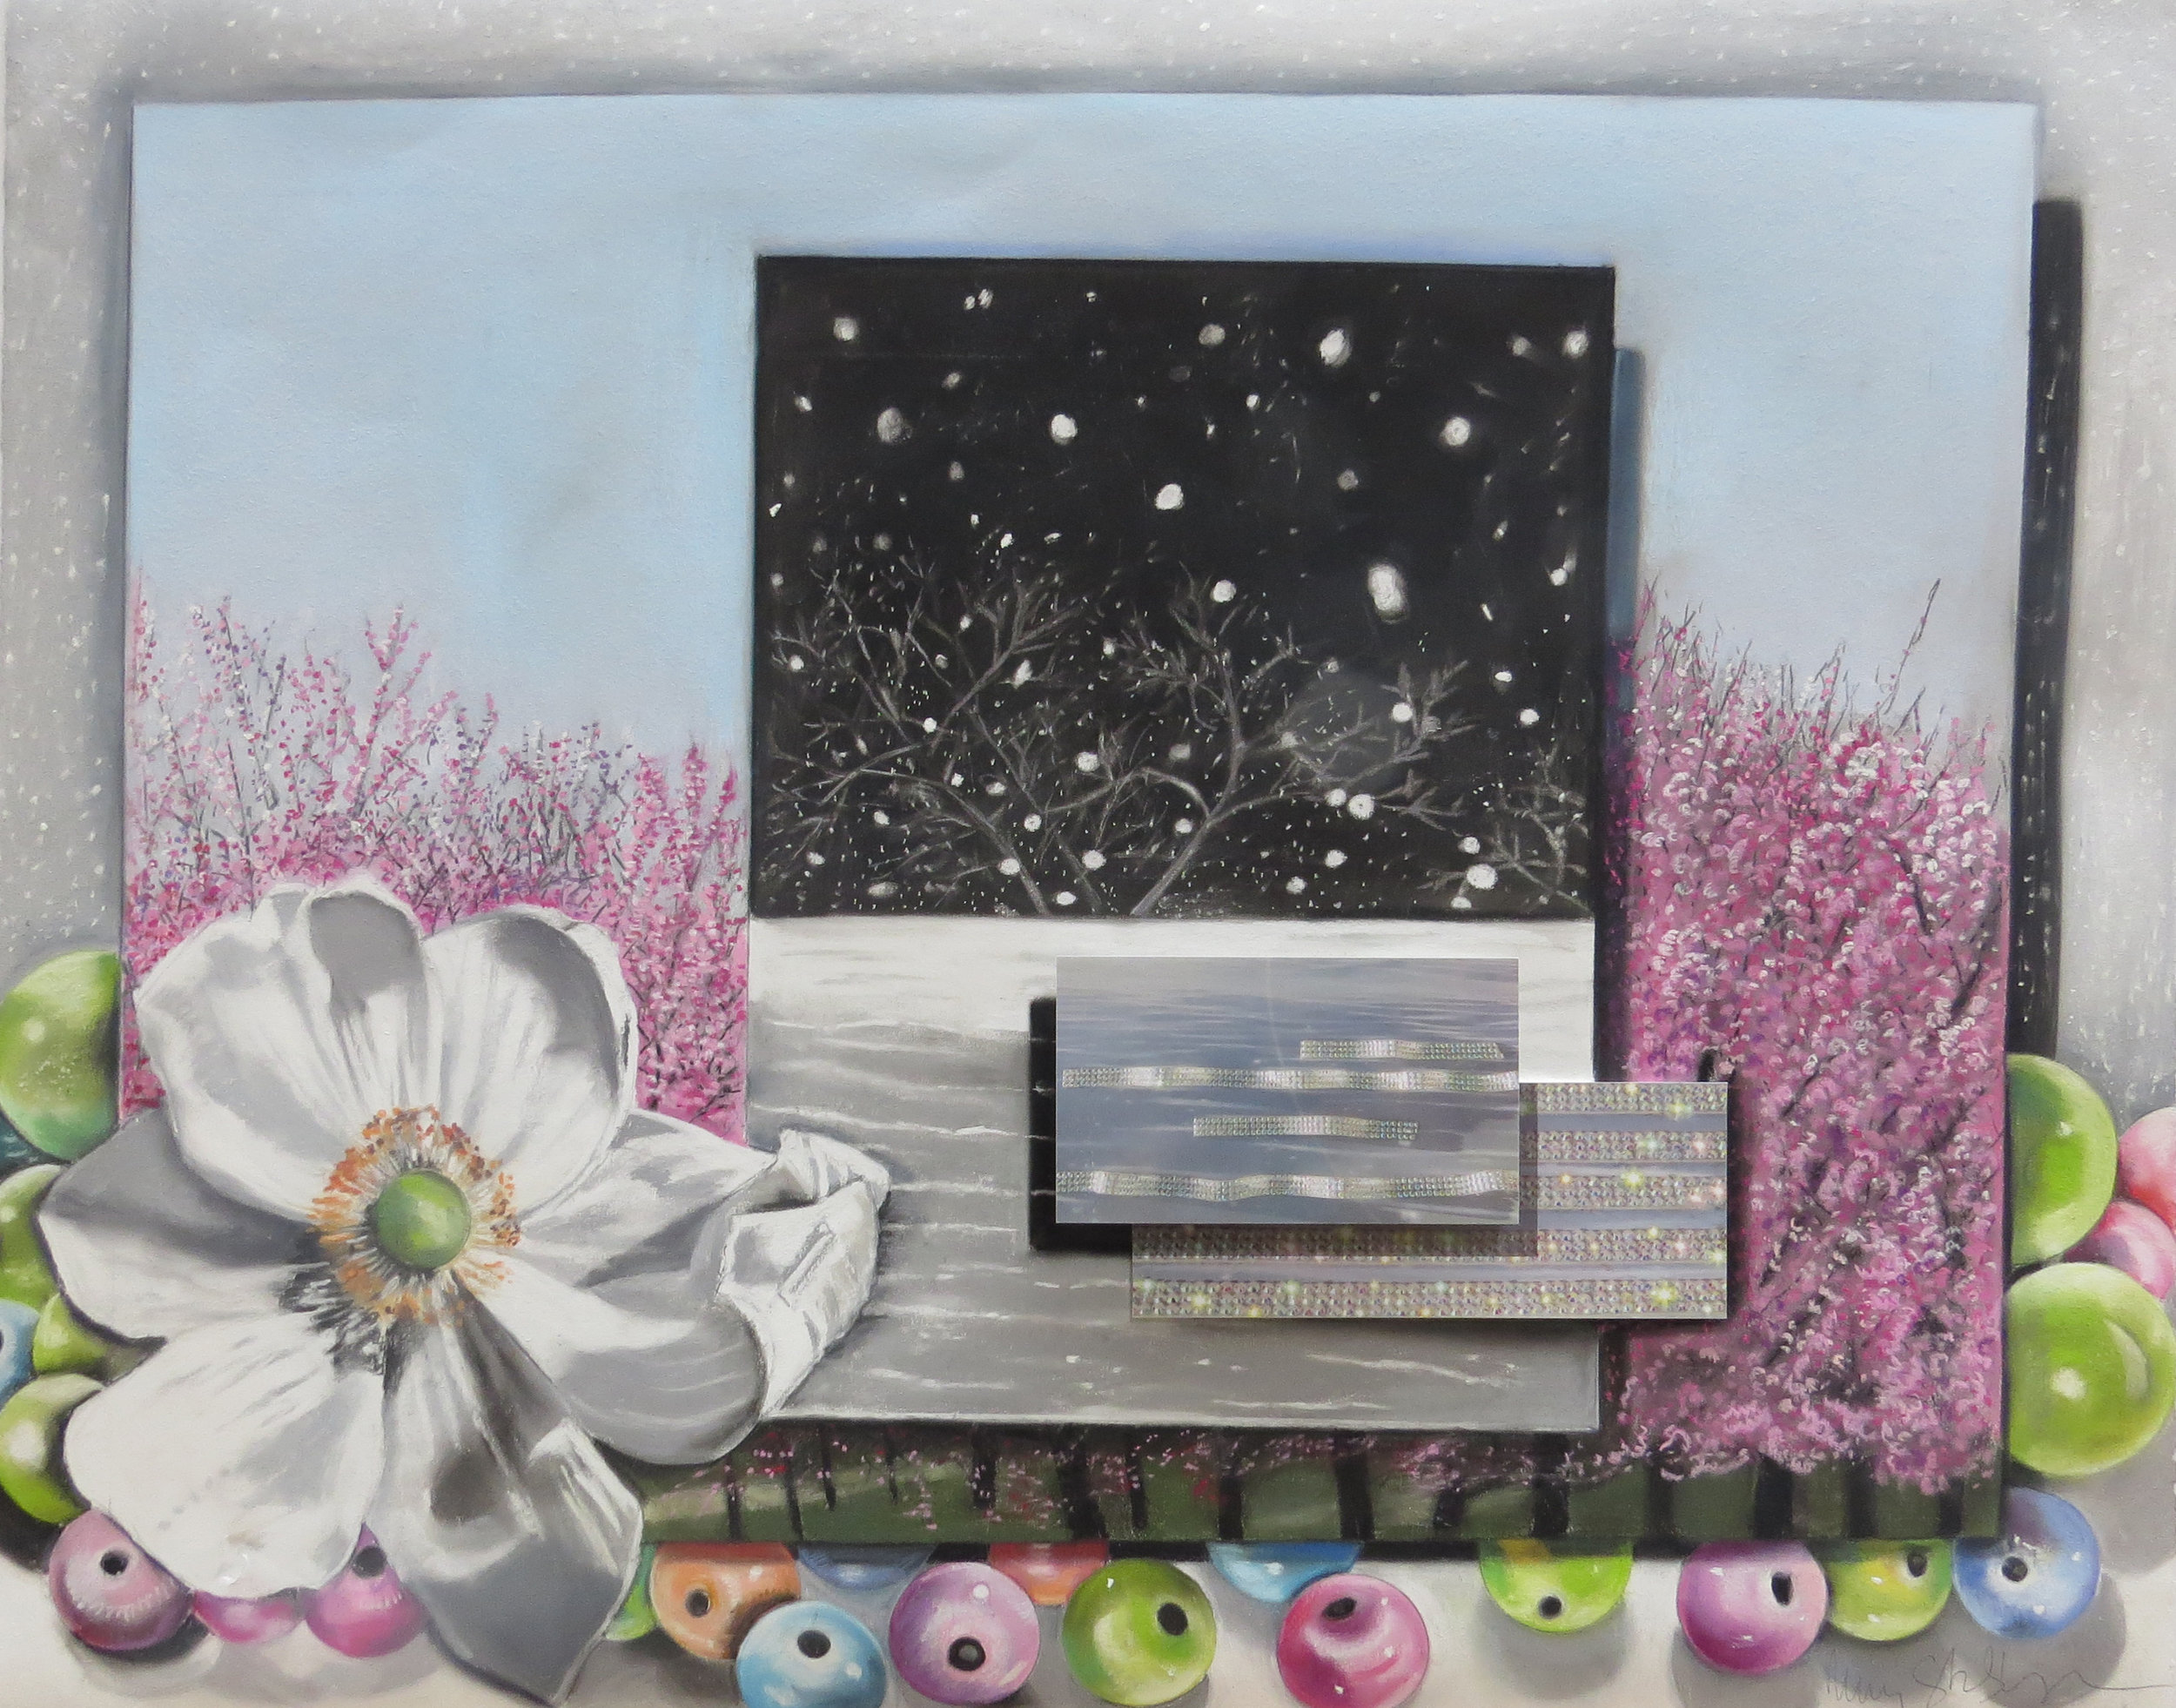 The Sparkling Waves and Blossoming Snow   28 x 35, pastel on paper, mounted photographs